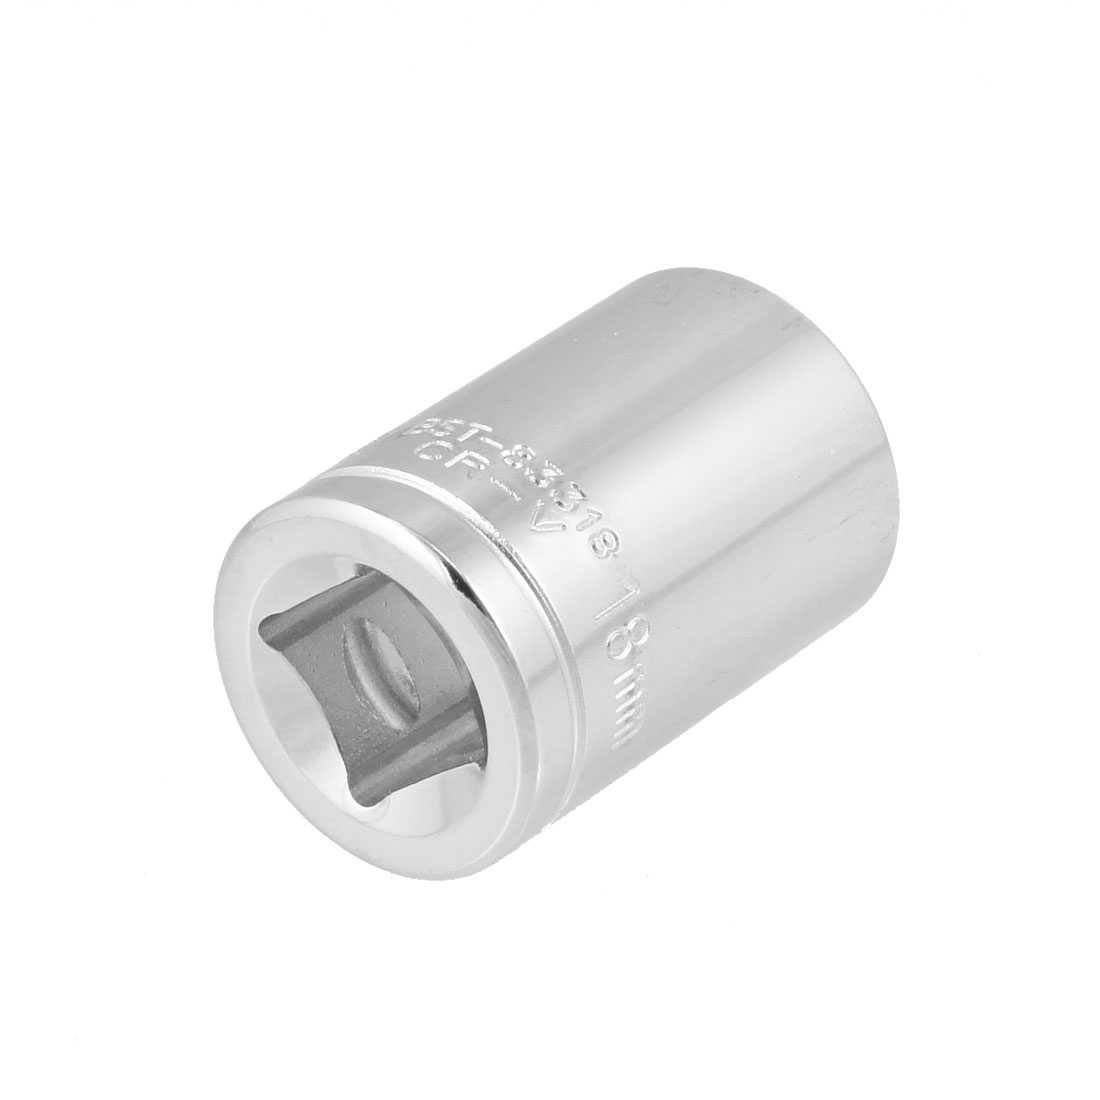 Unique Bargains Chrome Plated Metal 18mm Width Axle Hex Socket for 1/2' Drive Insert